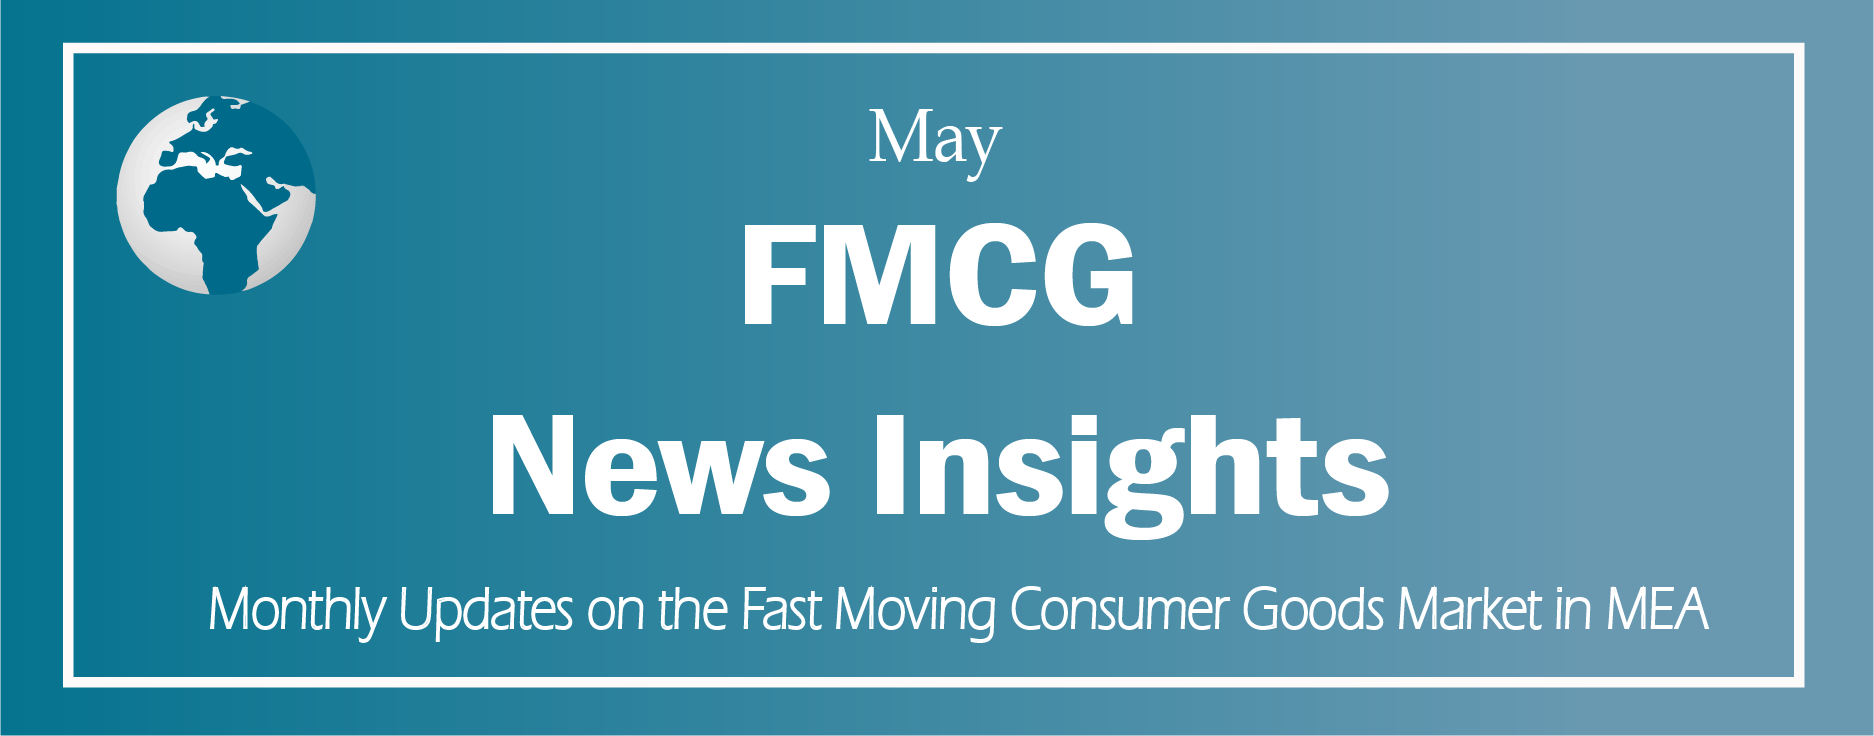 Newsletter title fmcg may.png